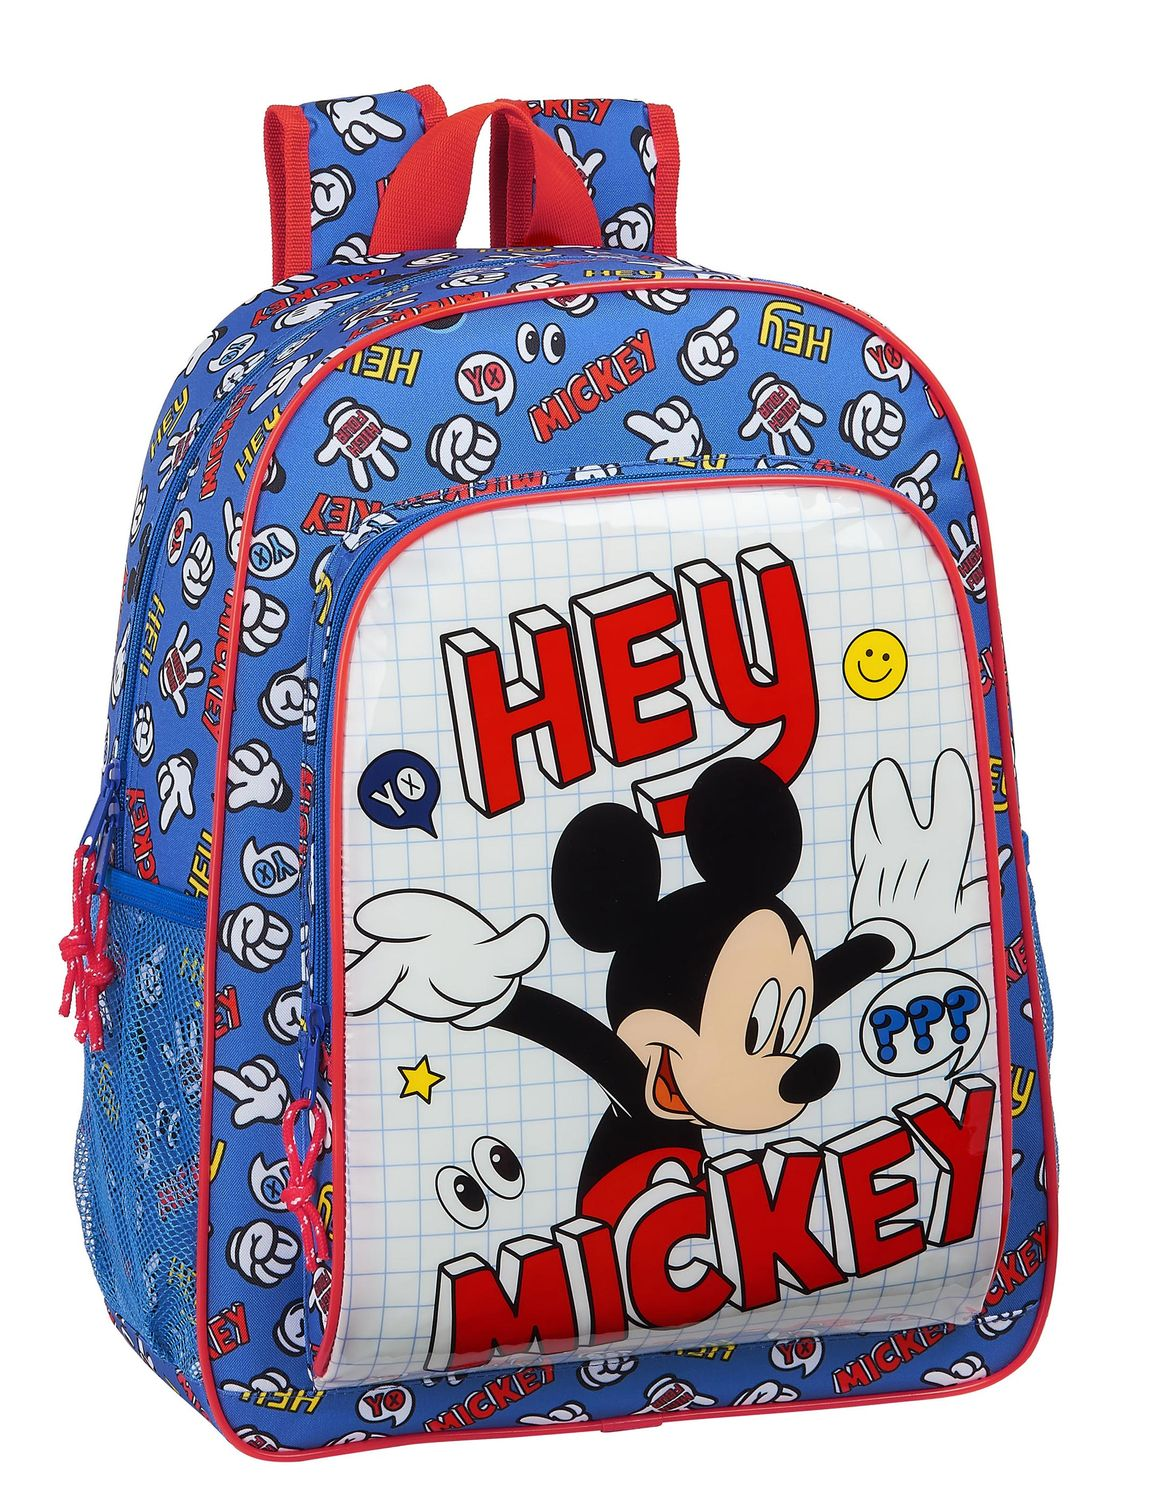 Disney MICKEY MOUSE THINGS Backpack Rucksack 42cm – image 1